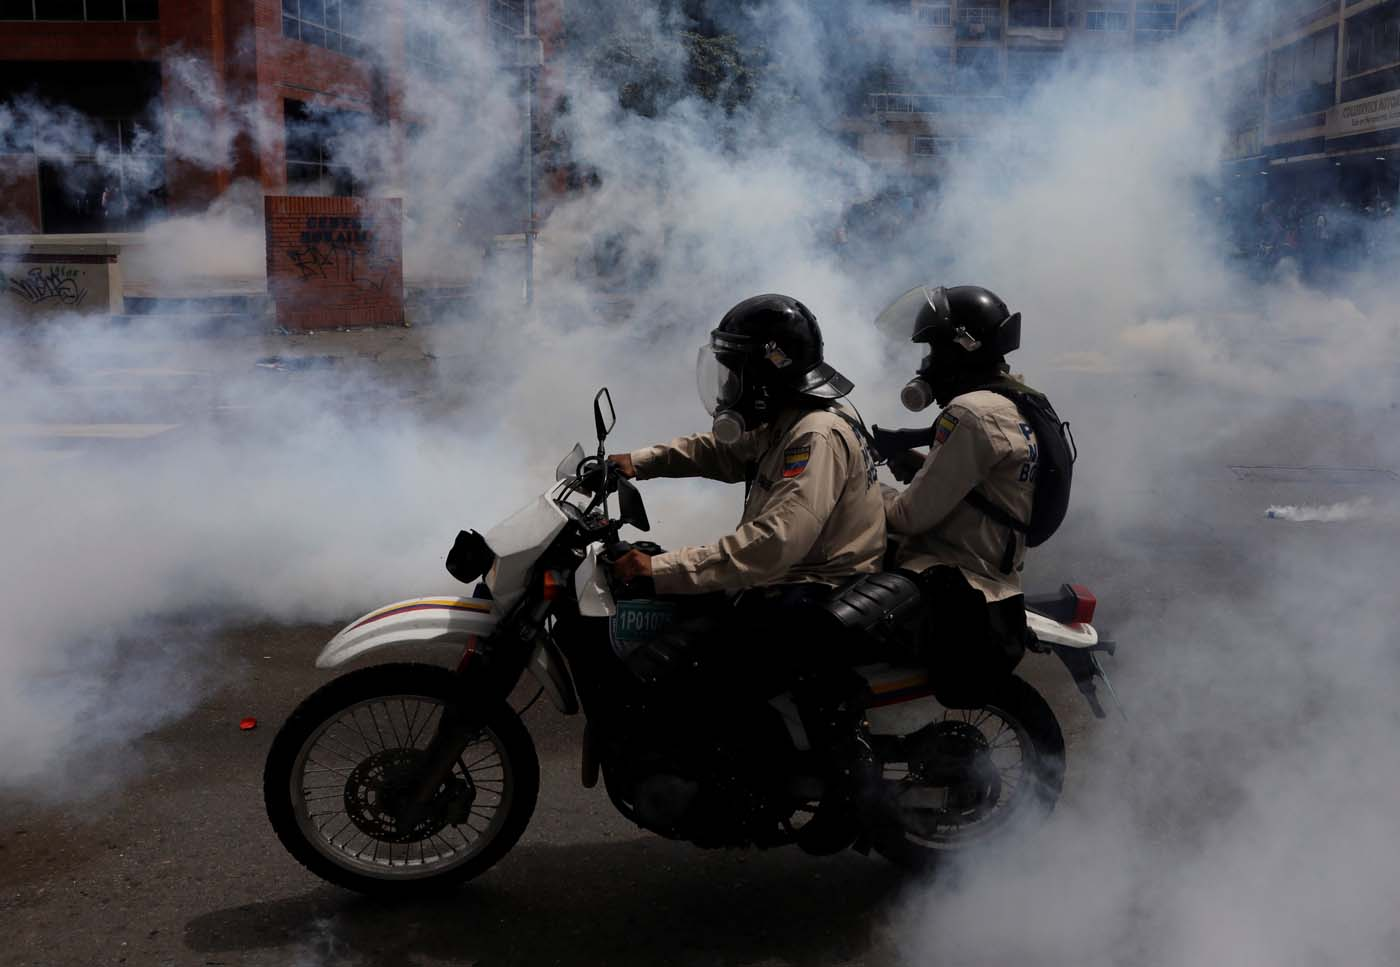 Riot security forces ride a dirt bike while clashing with demonstrators rallying against President Nicolas Maduro in Caracas, Venezuela, May 24, 2017. REUTERS/Carlos Garcia Rawlins